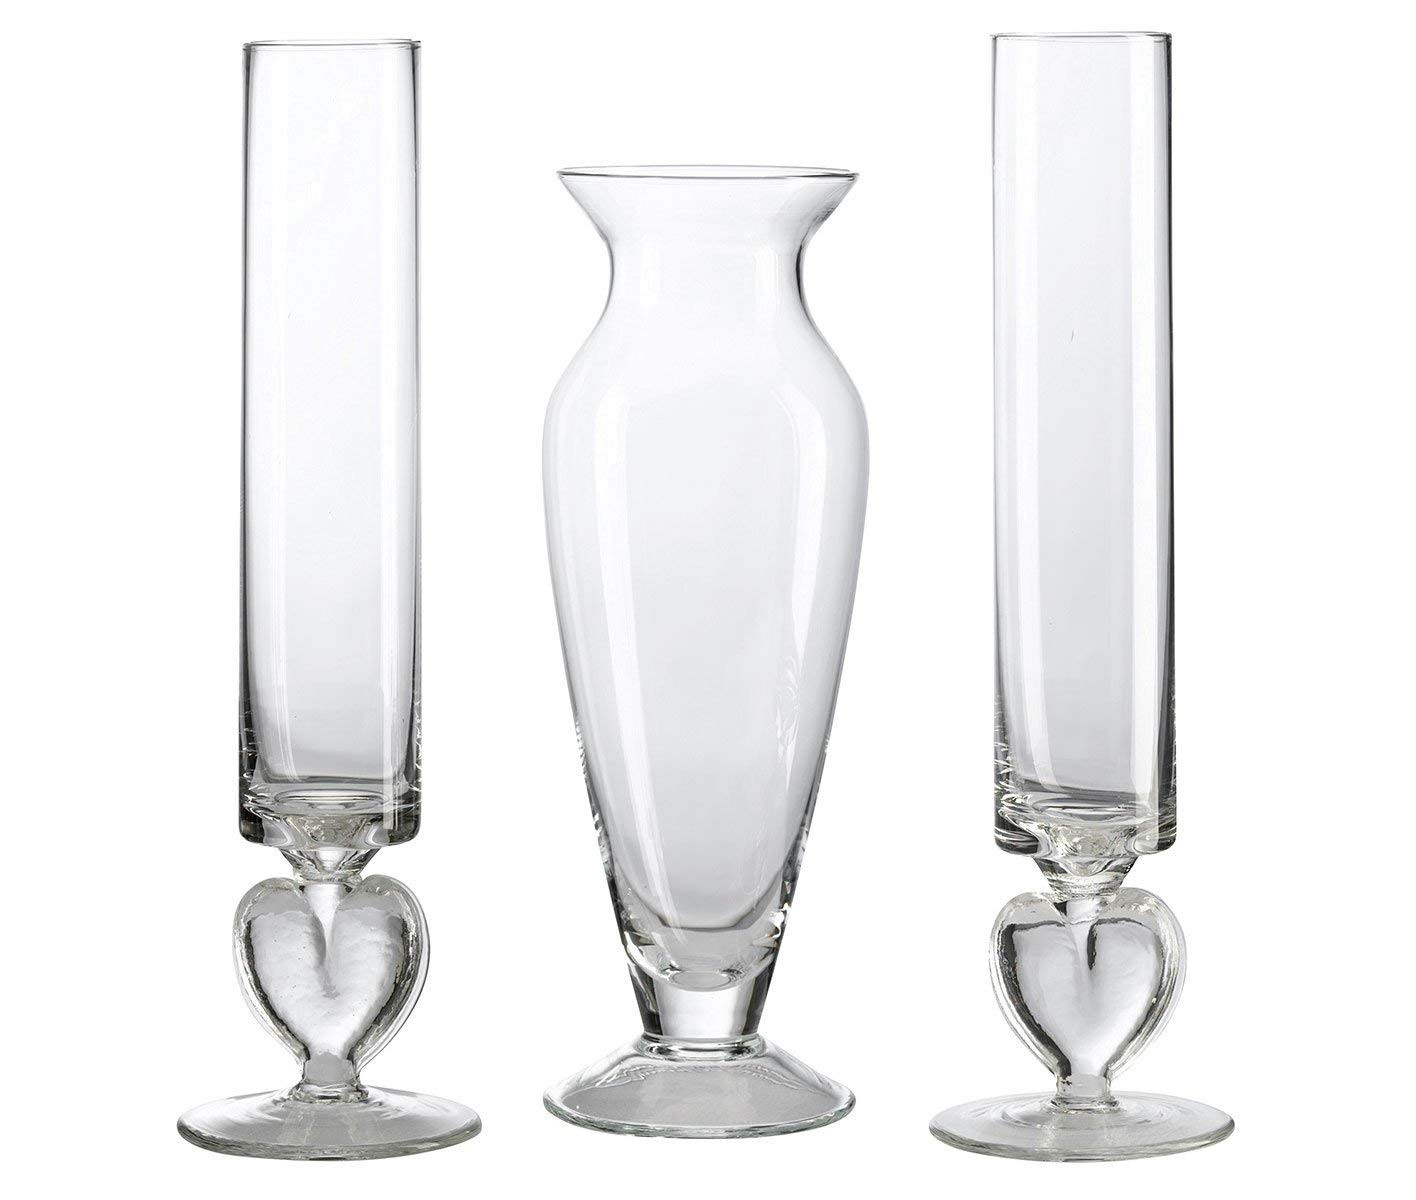 24 inch tall clear vases of amazon com lillian rose unity sand ceremony wedding vase set home with regard to amazon com lillian rose unity sand ceremony wedding vase set home kitchen